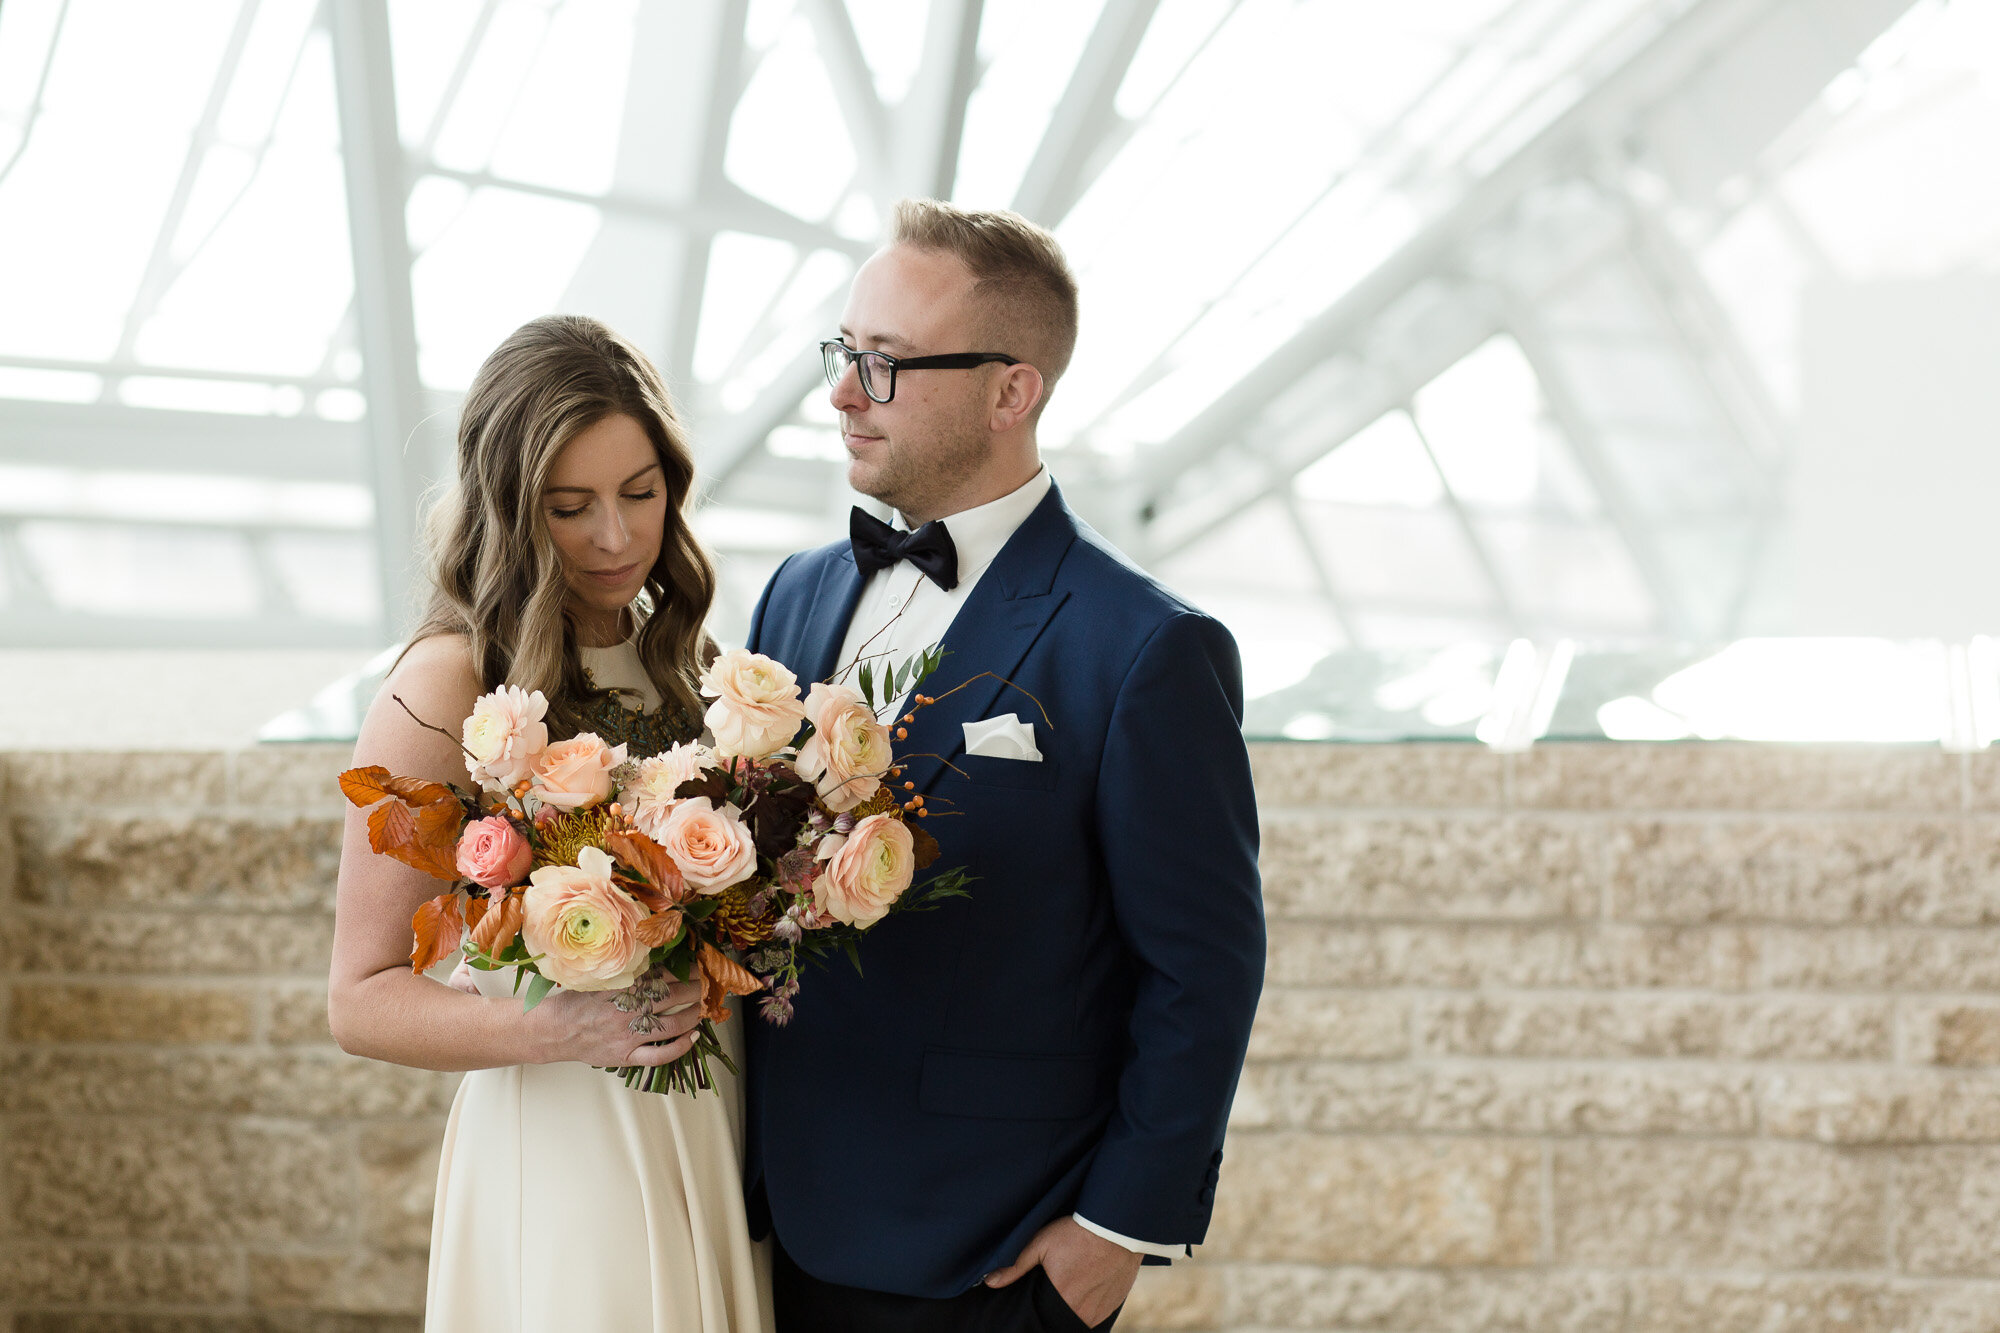 Canadian Museum of human Rights Wedding - Wedding Florists in Winnipeg